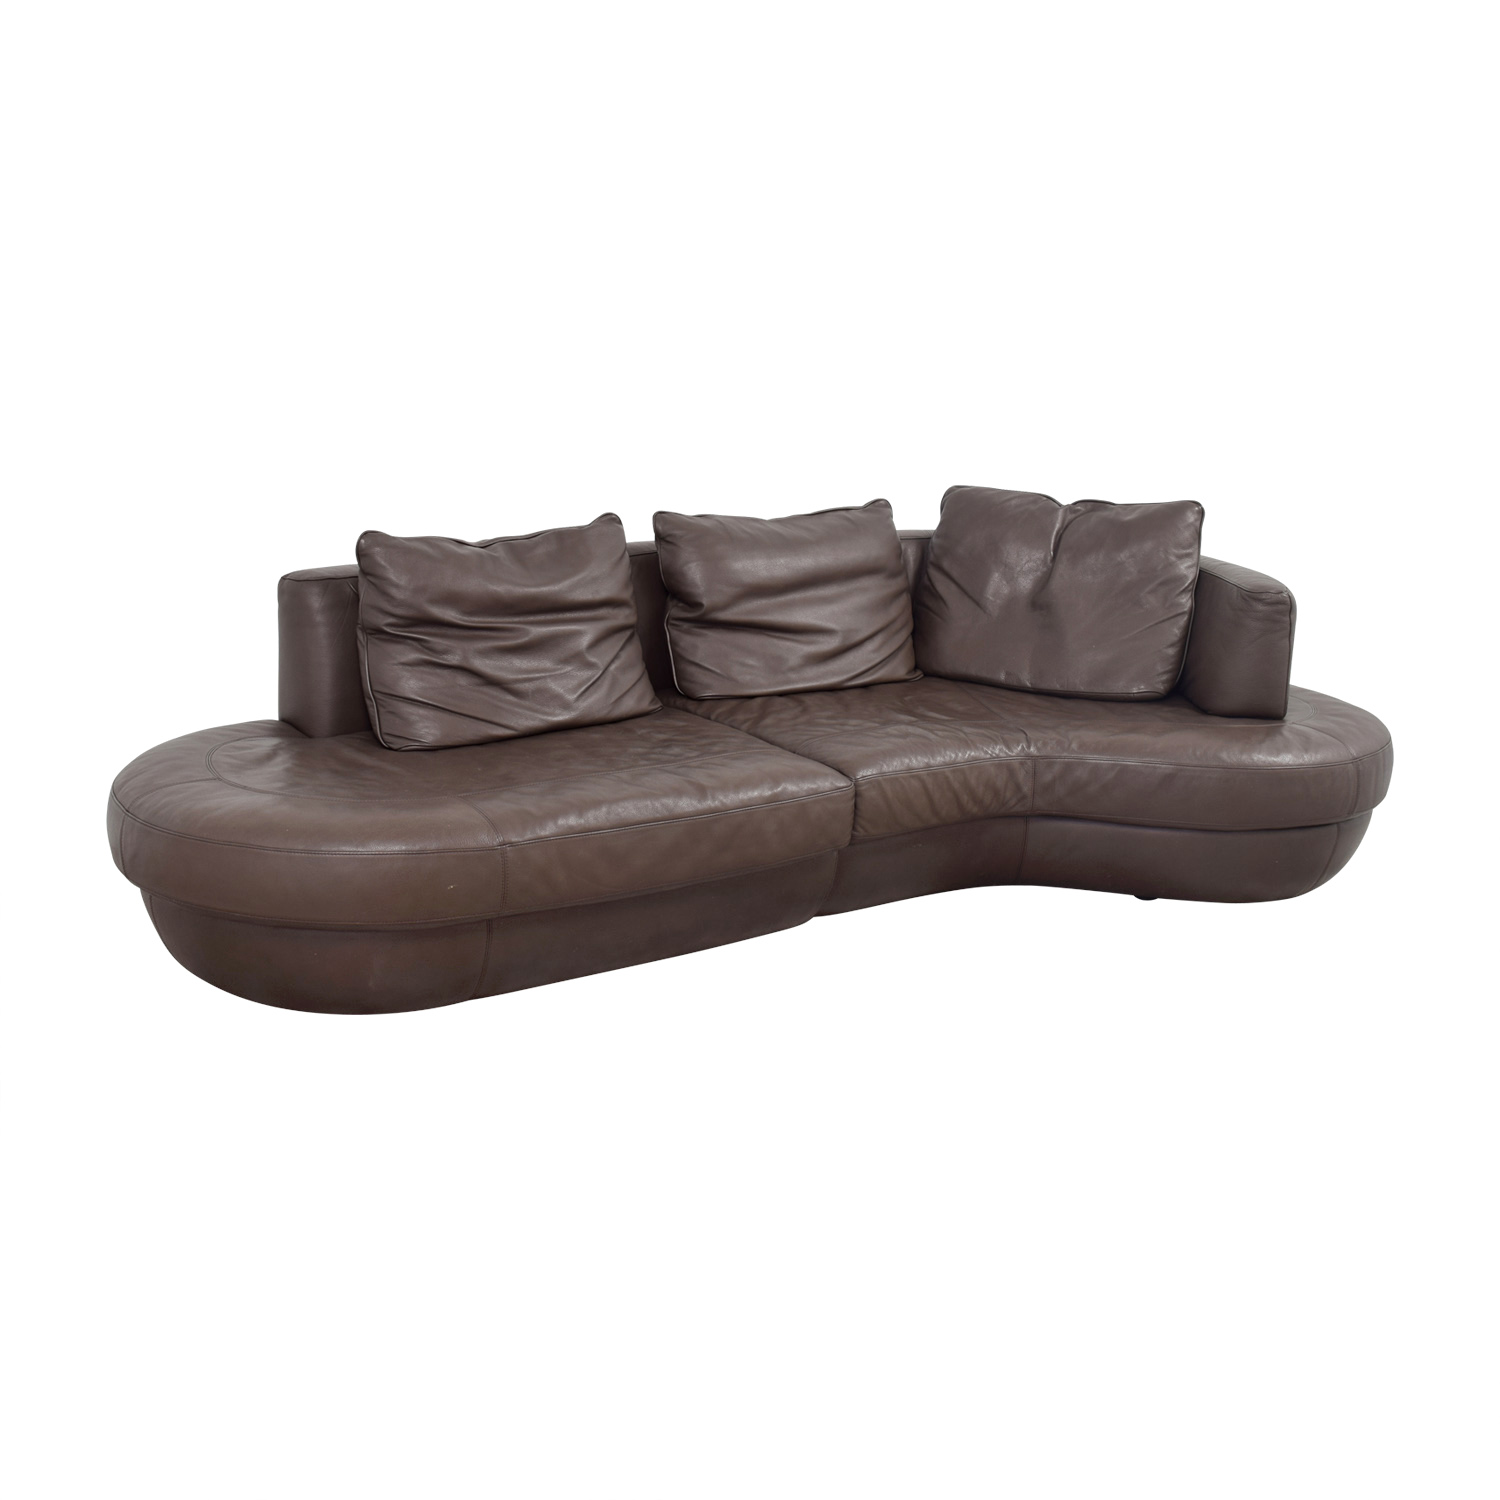 But reupholstering the sofa yourself is likely easier than you imagine. 90% OFF - Natuzzi Natuzzi Rondo Brown Leather Curved ...